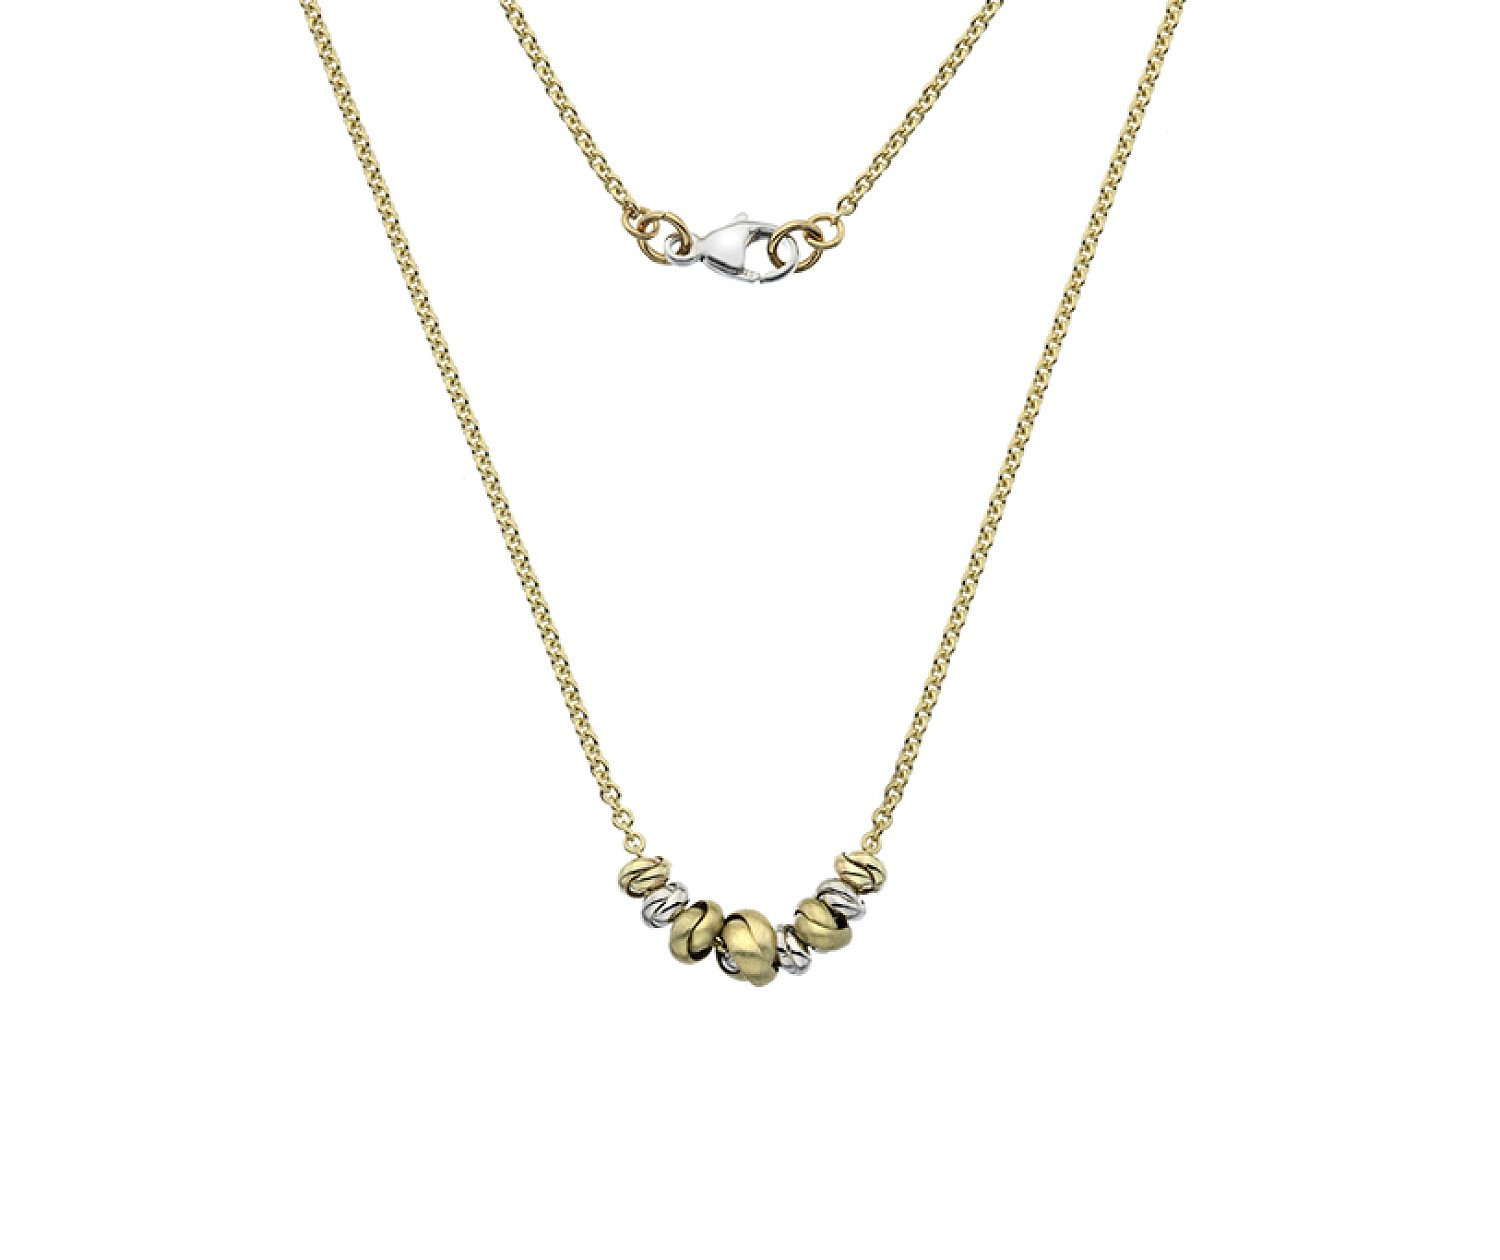 9ct Yellow, White and Rose Gold Necklaces from Callibeau Jewellery